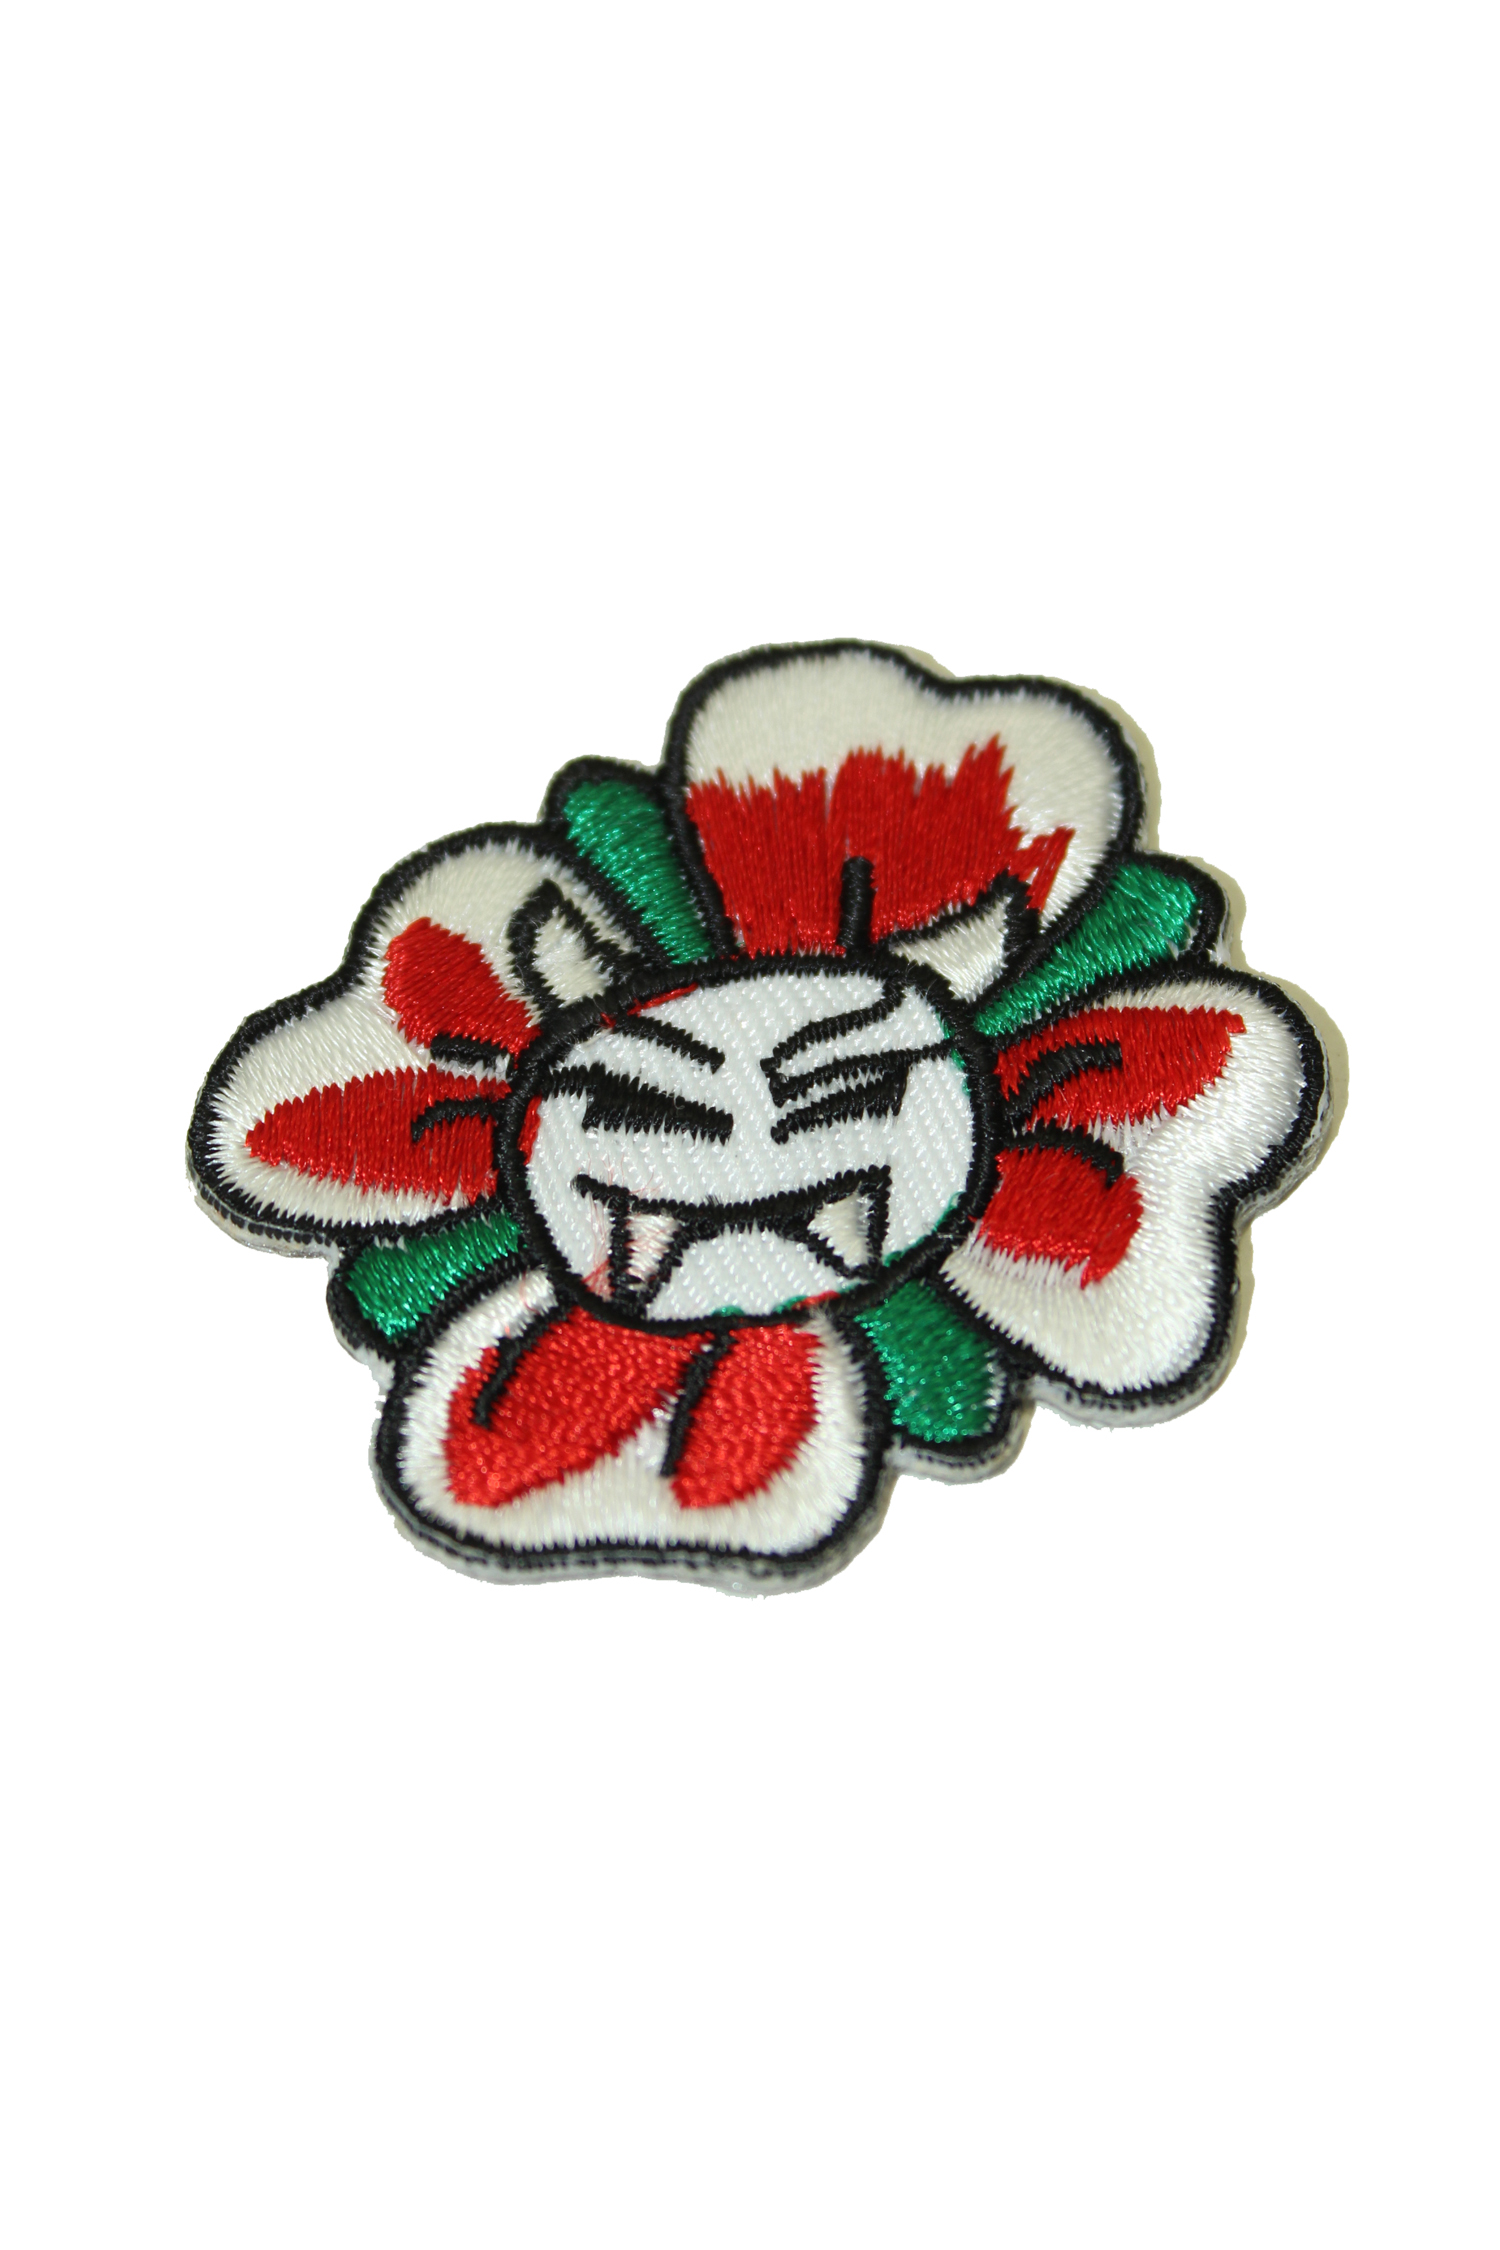 Mini Evil Vampir Flower Skull punk rock Totenkopf Patch Aufnäher